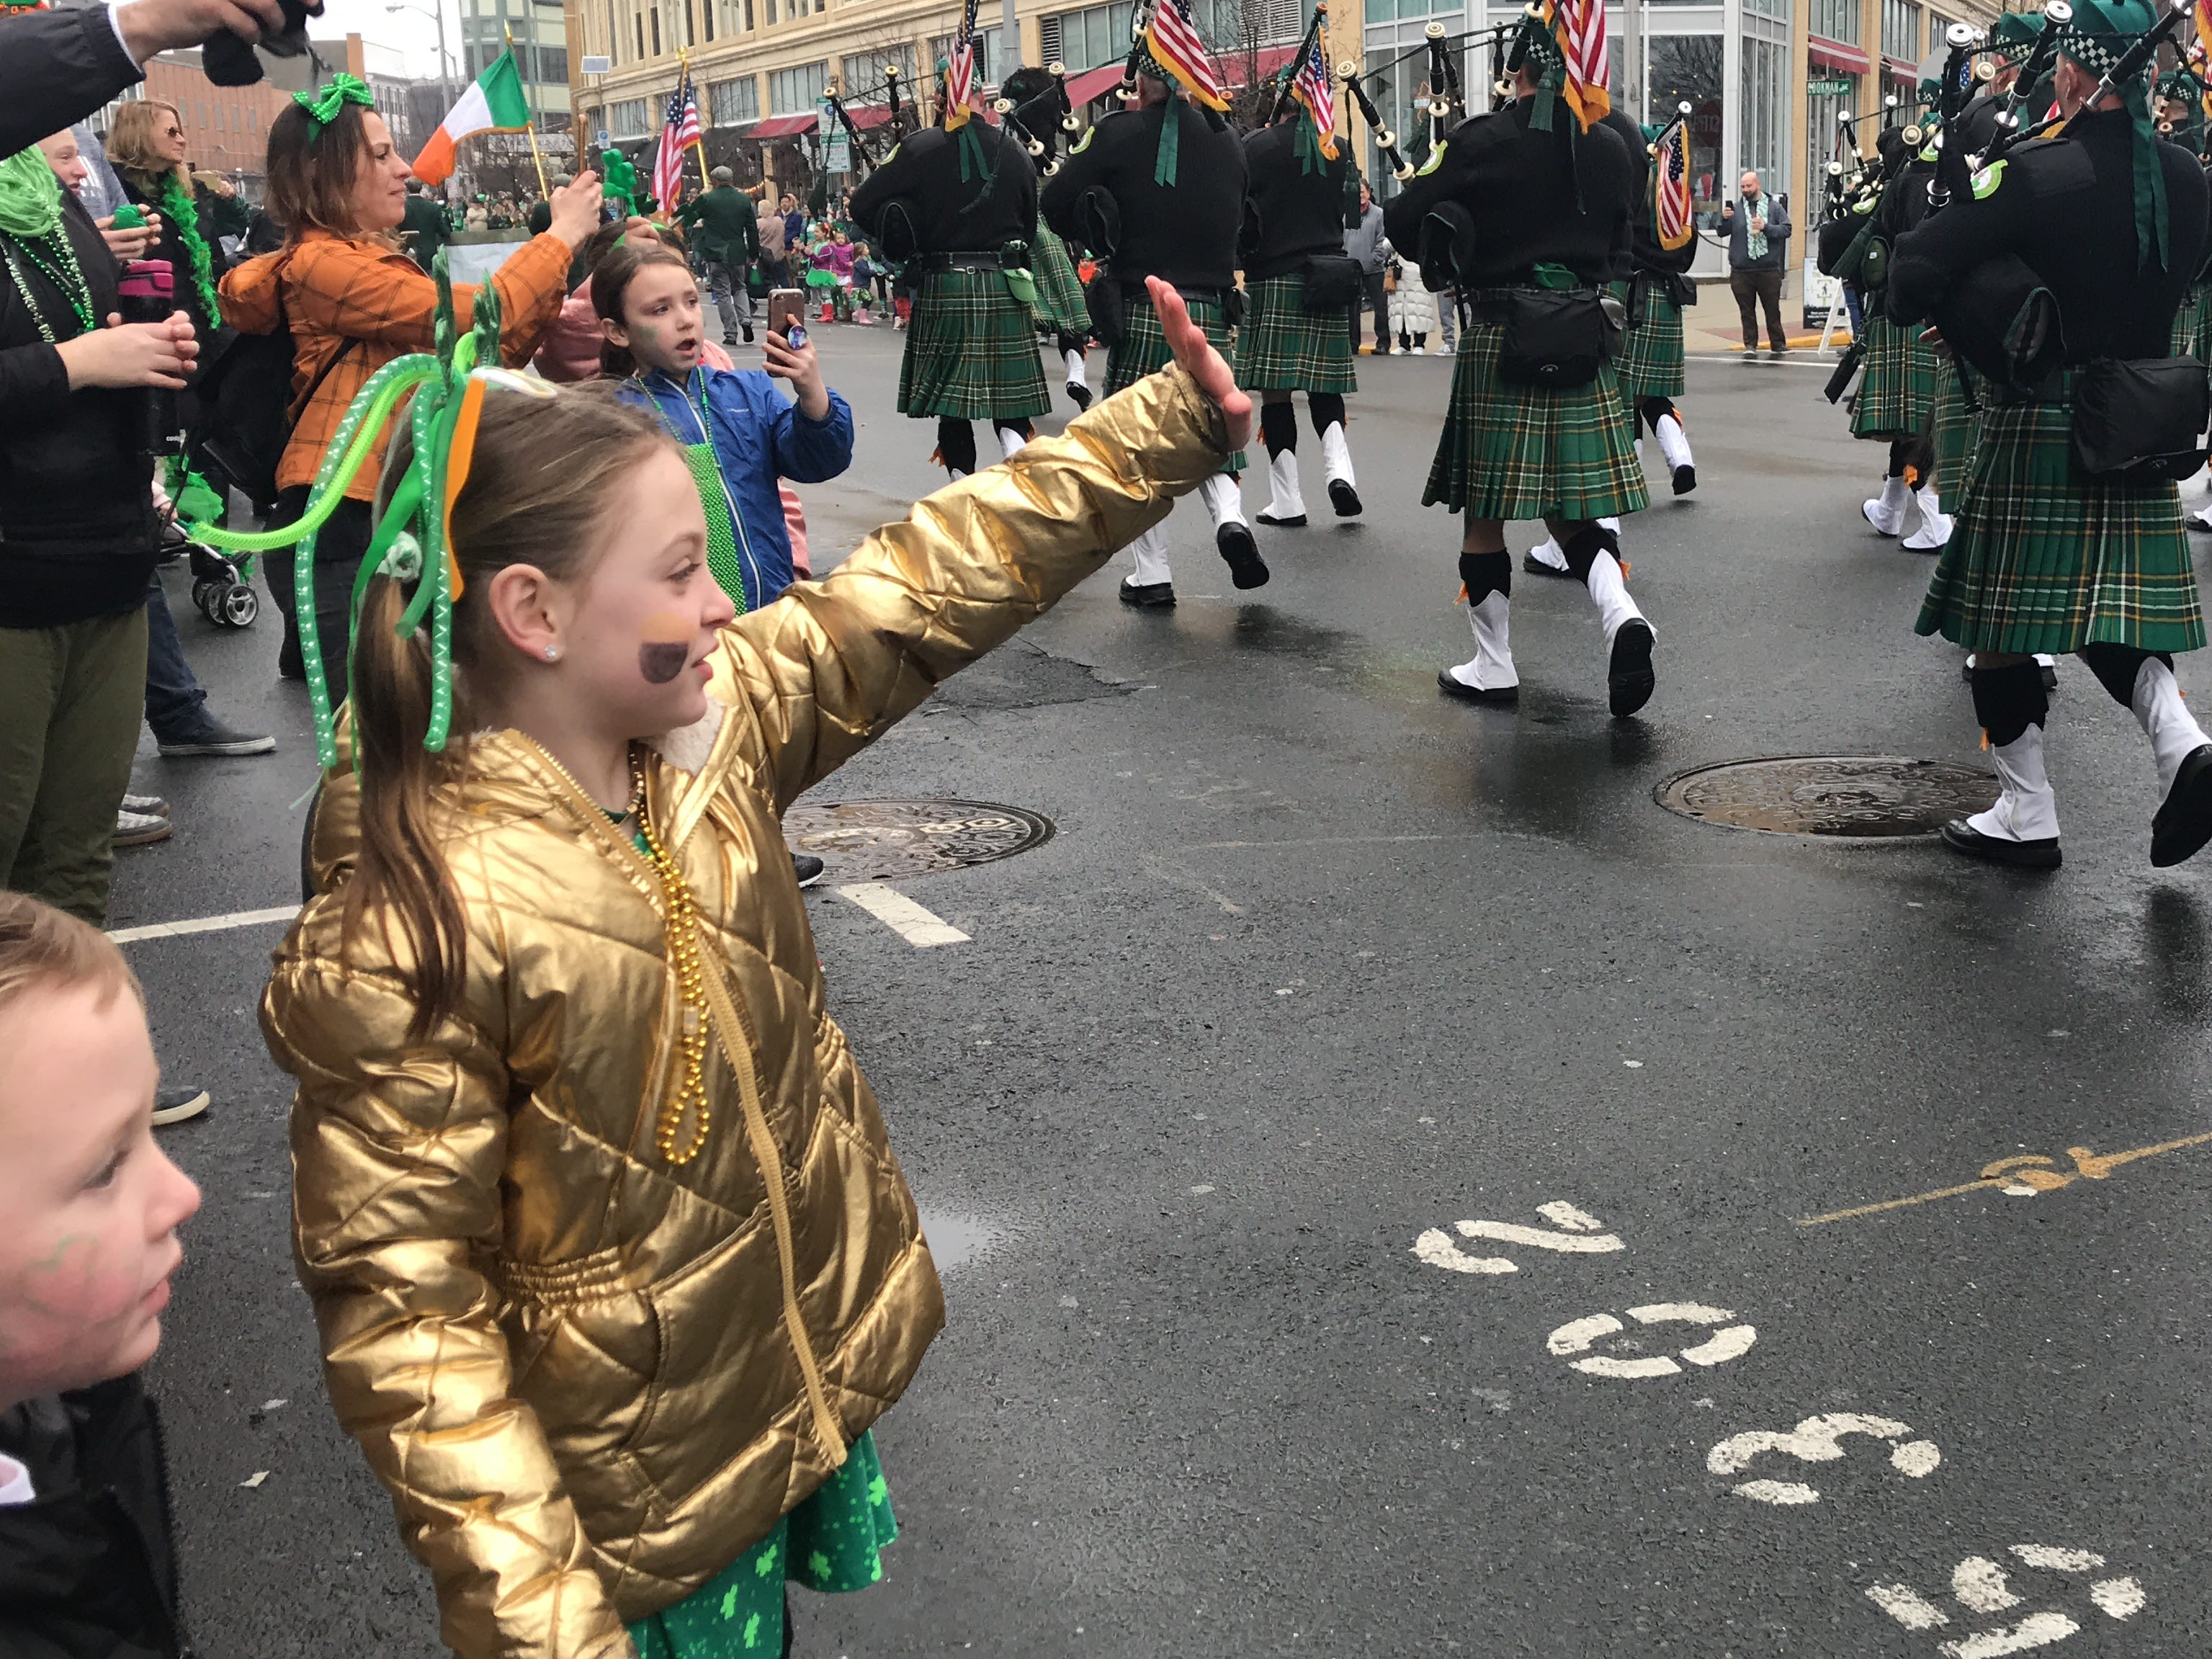 Ruby Delpriora, 6, of Howell, waves to marchers at the St. Patrick's Day Parade in Asbury Park on March 10, 2019.